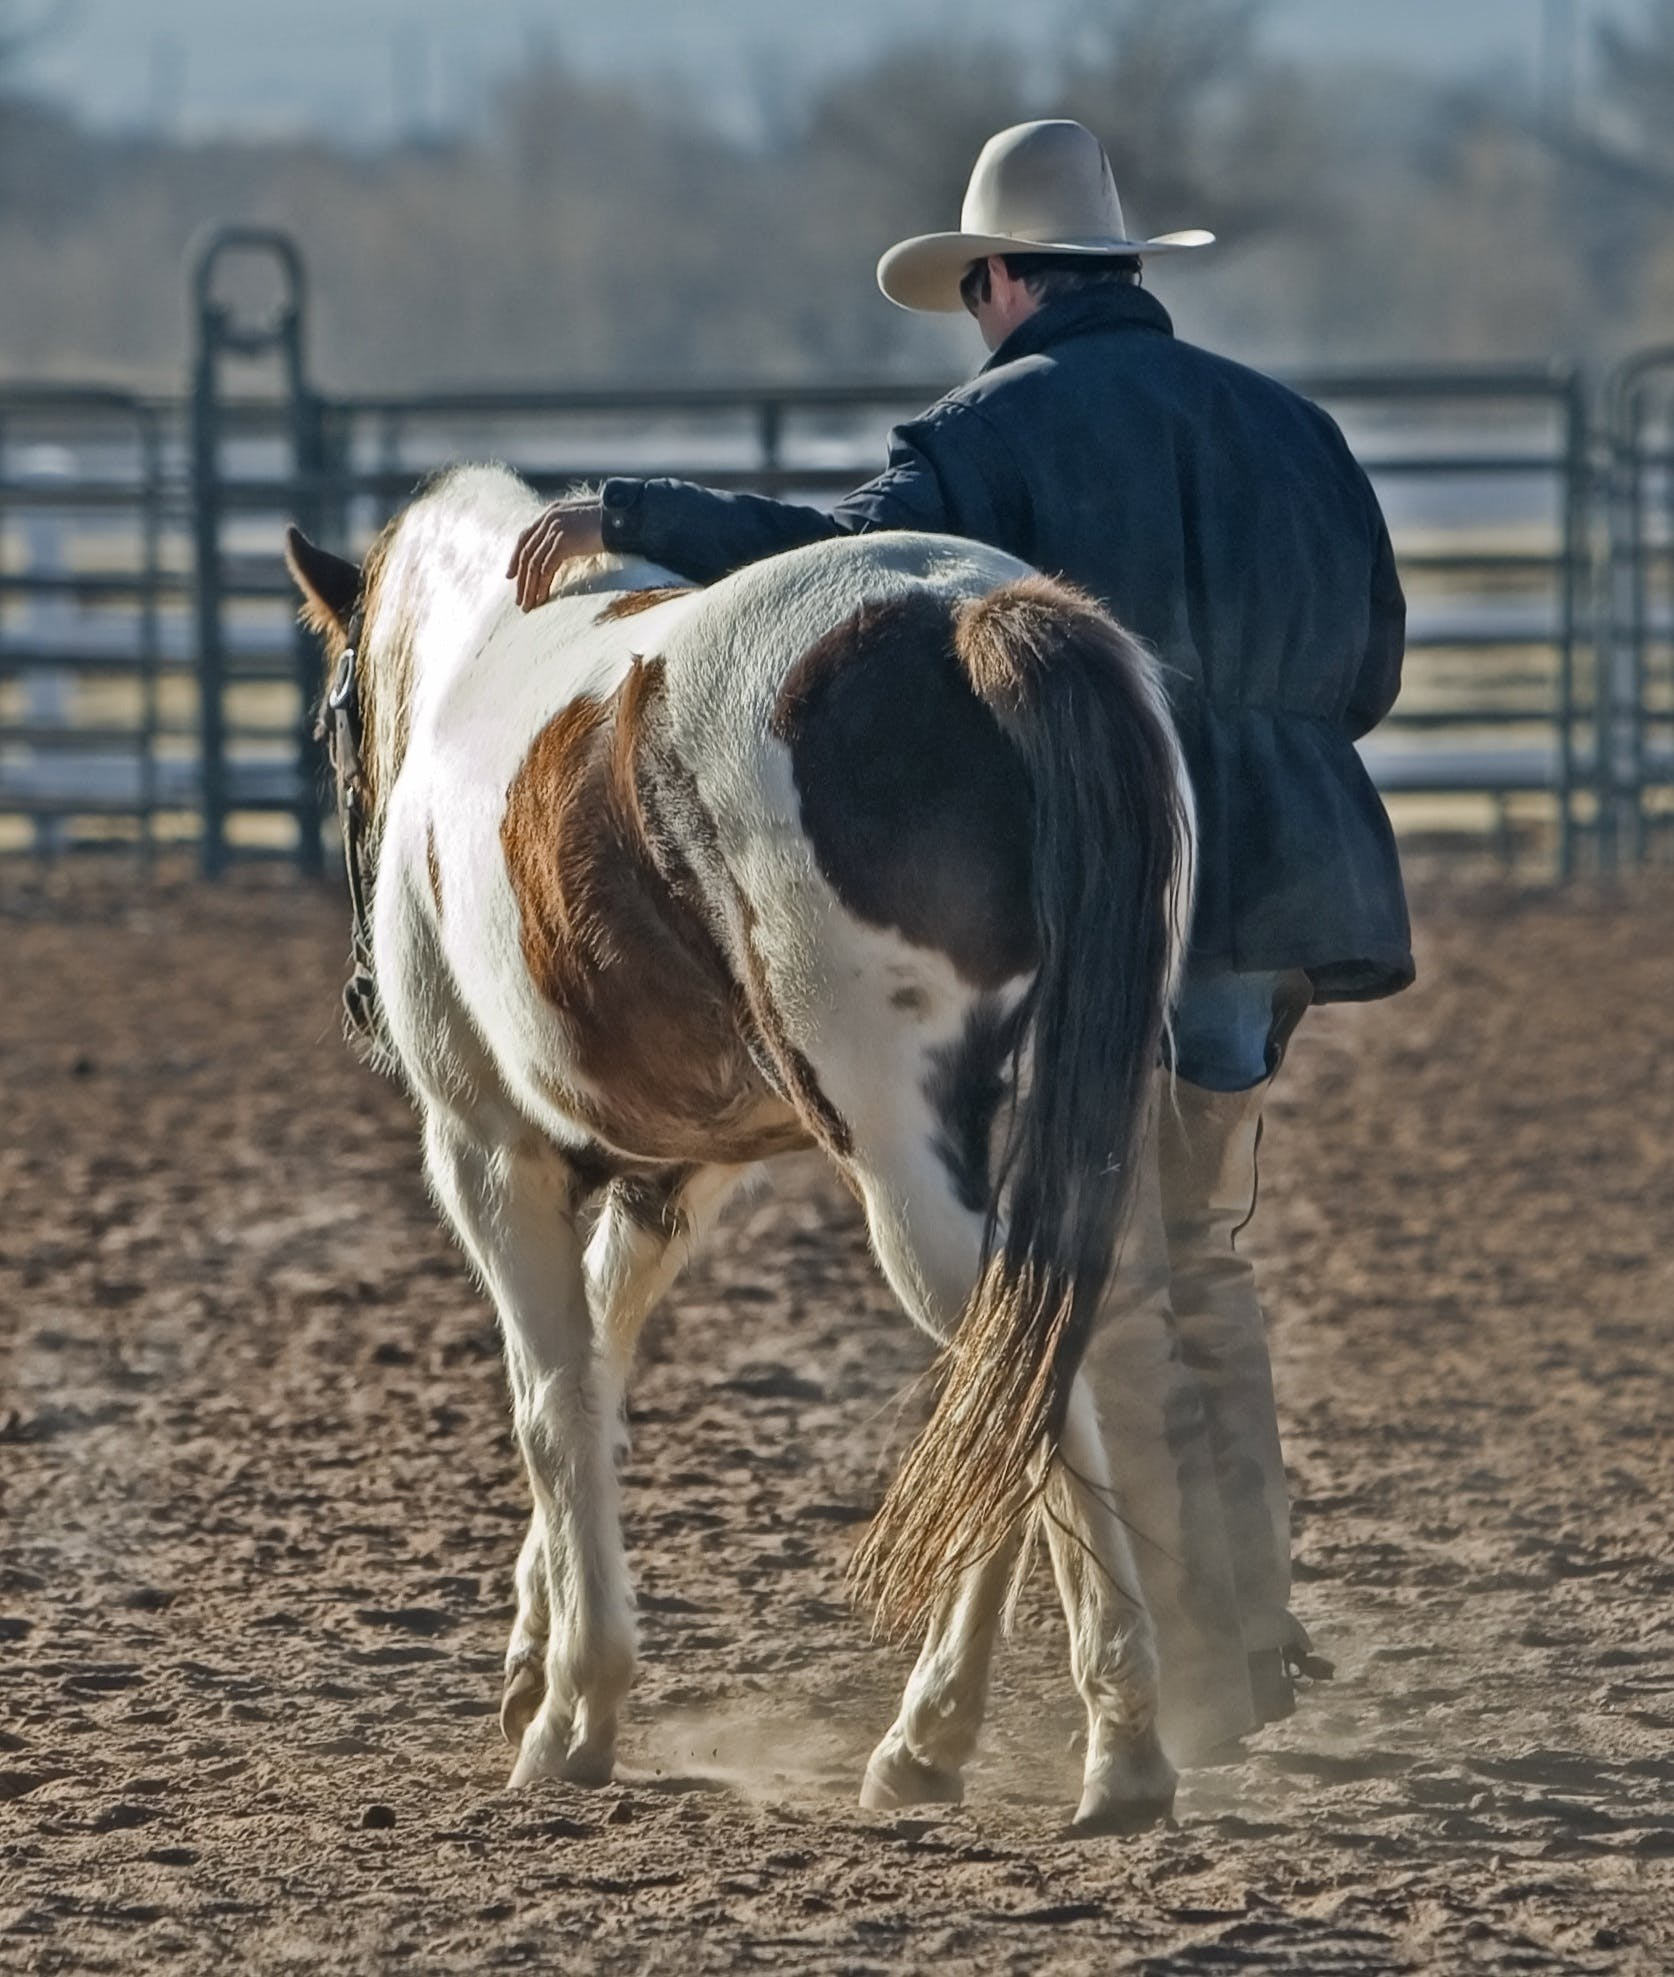 Man Walking With Horse